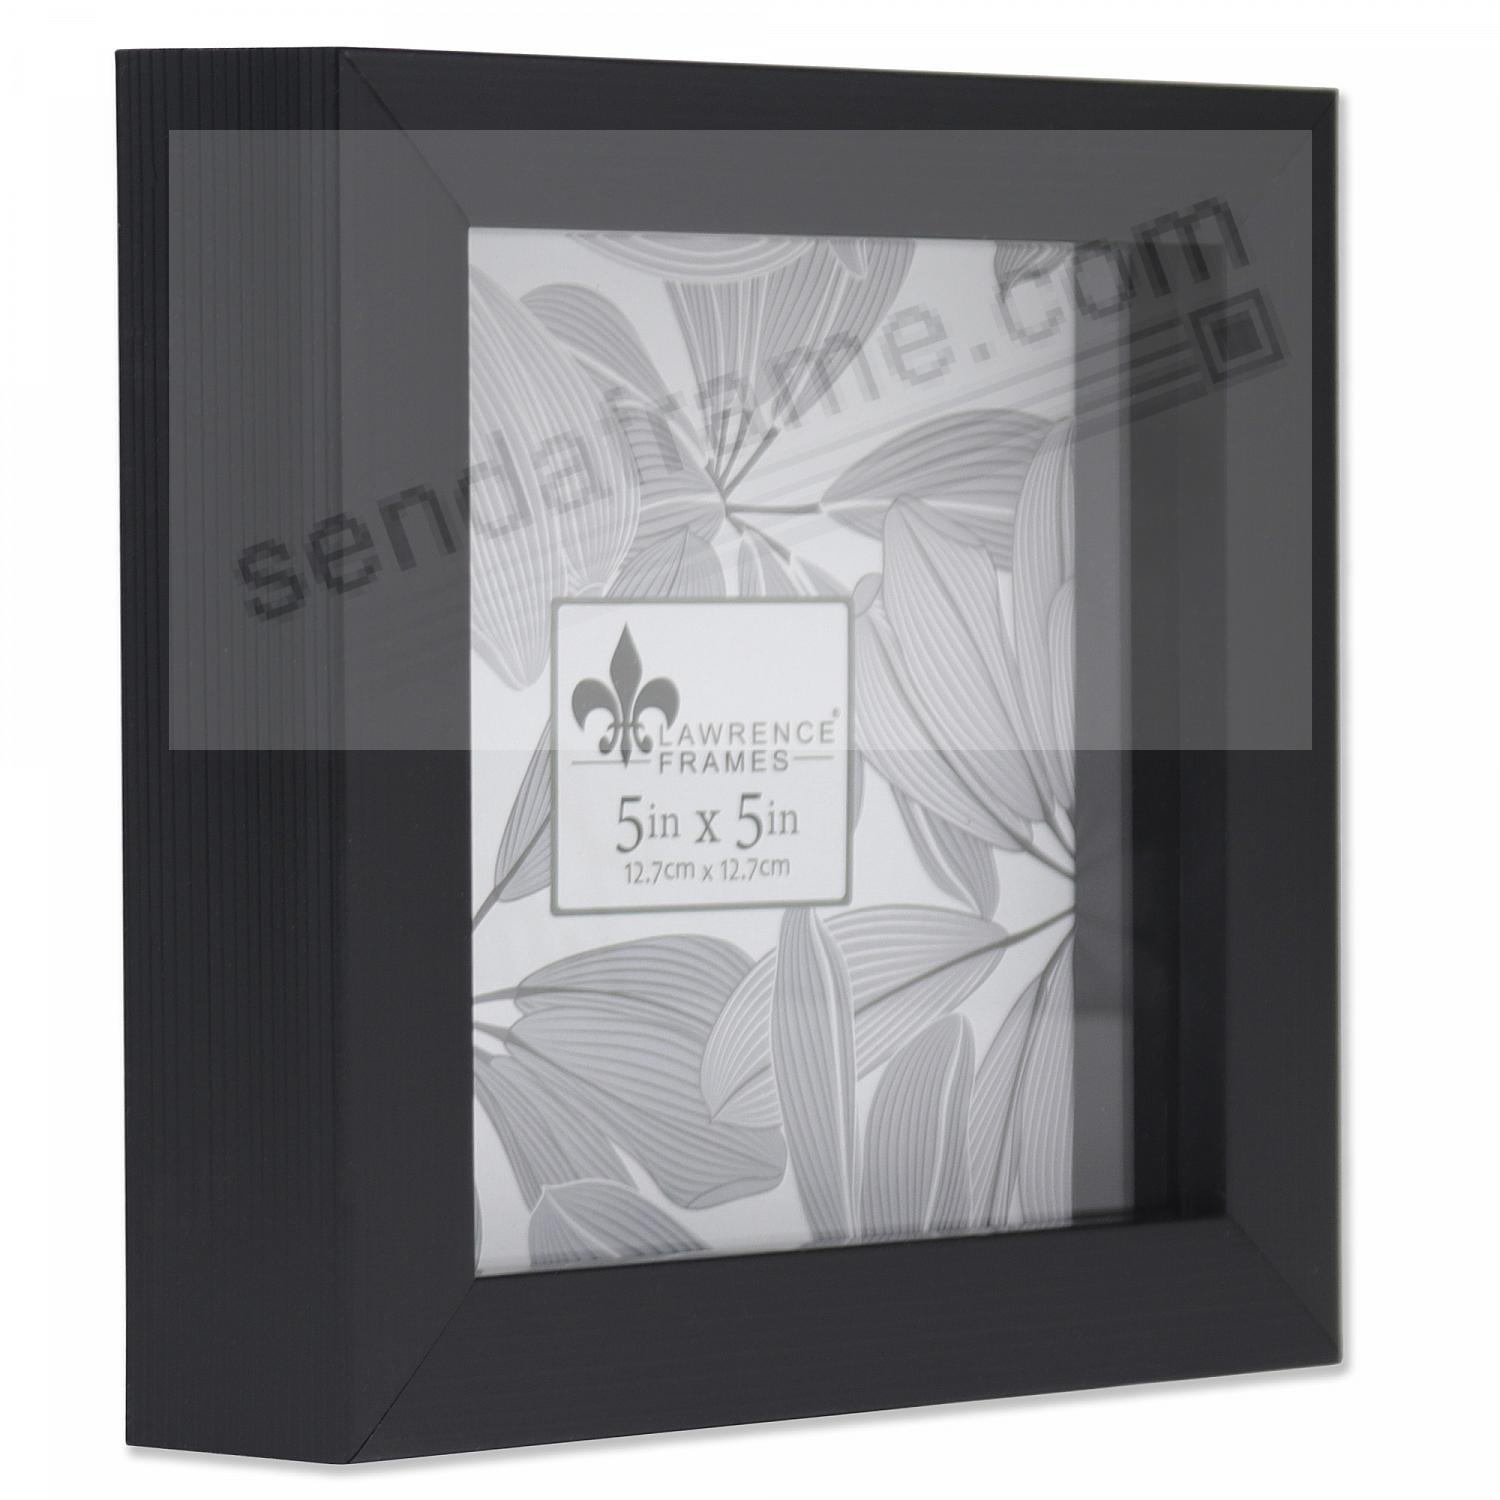 WEATHERED BLACK Shadow Box 5x5 frame ¾in depth by Lawrence®